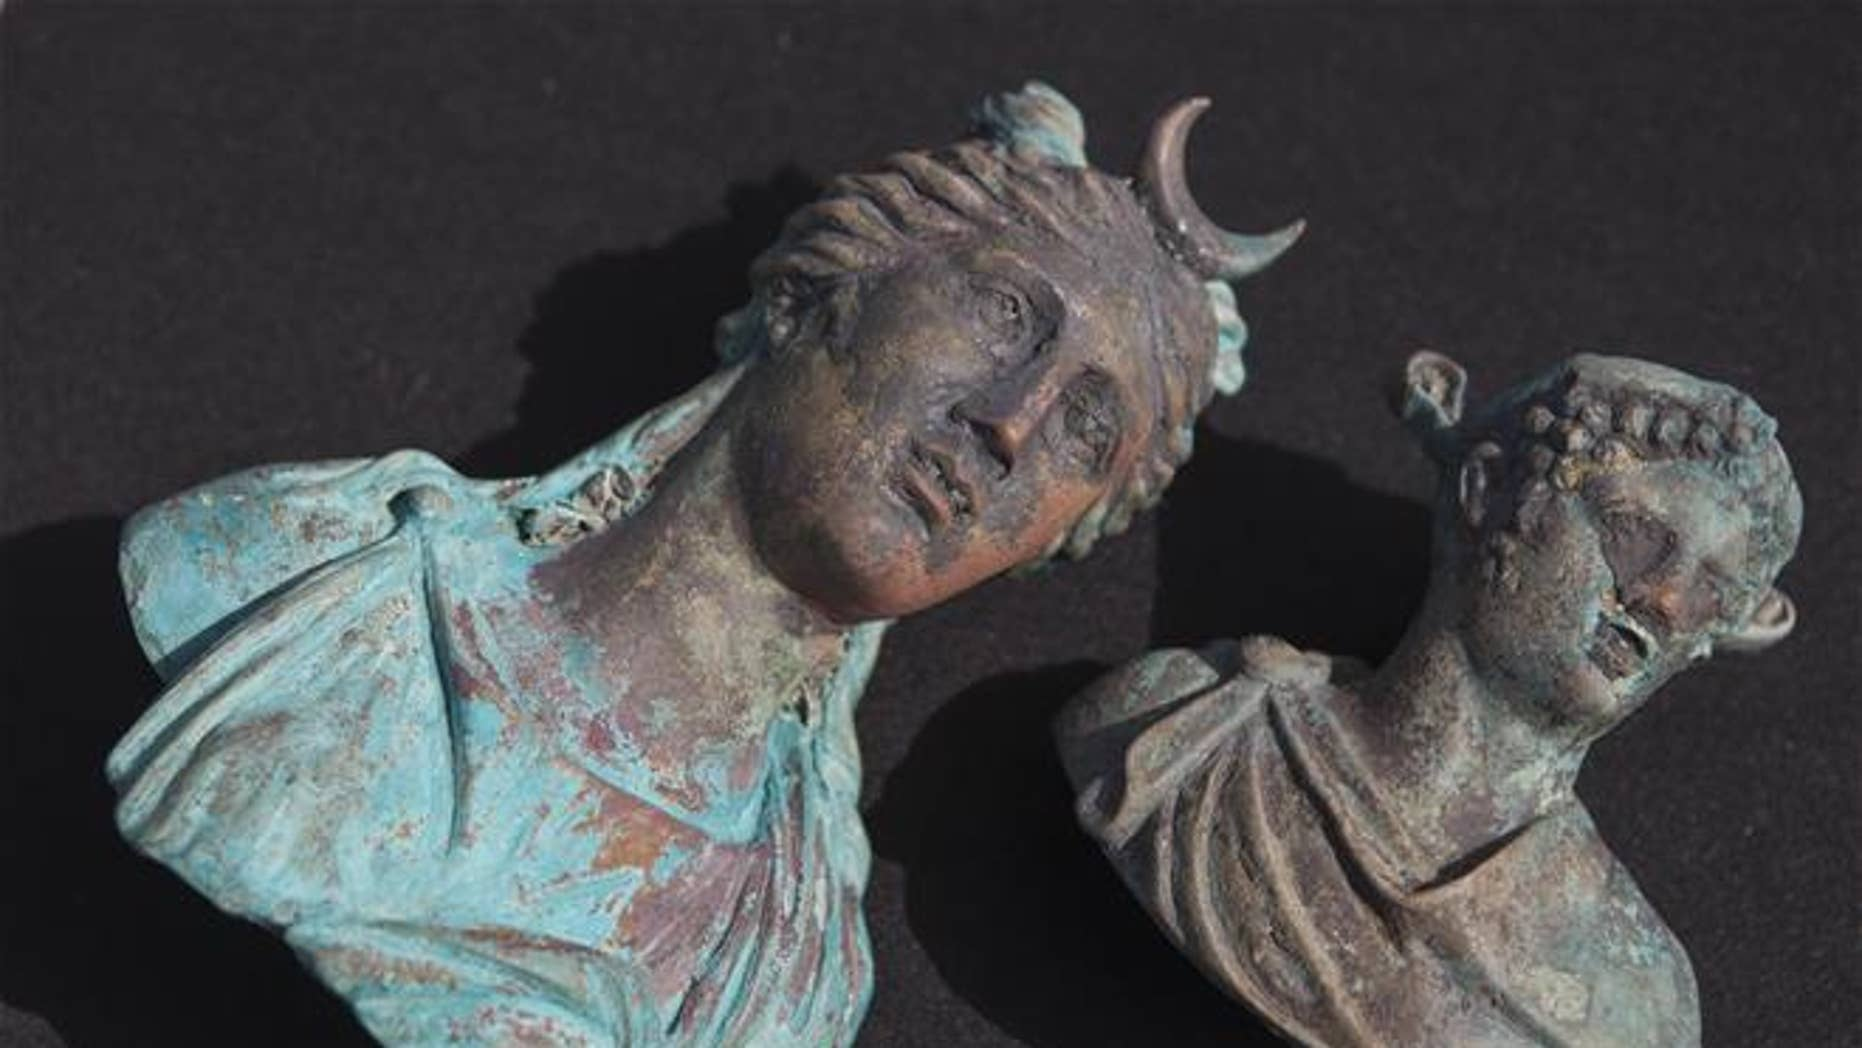 The haul is Israel's biggest discovery of Roman-era artifacts in three decades.